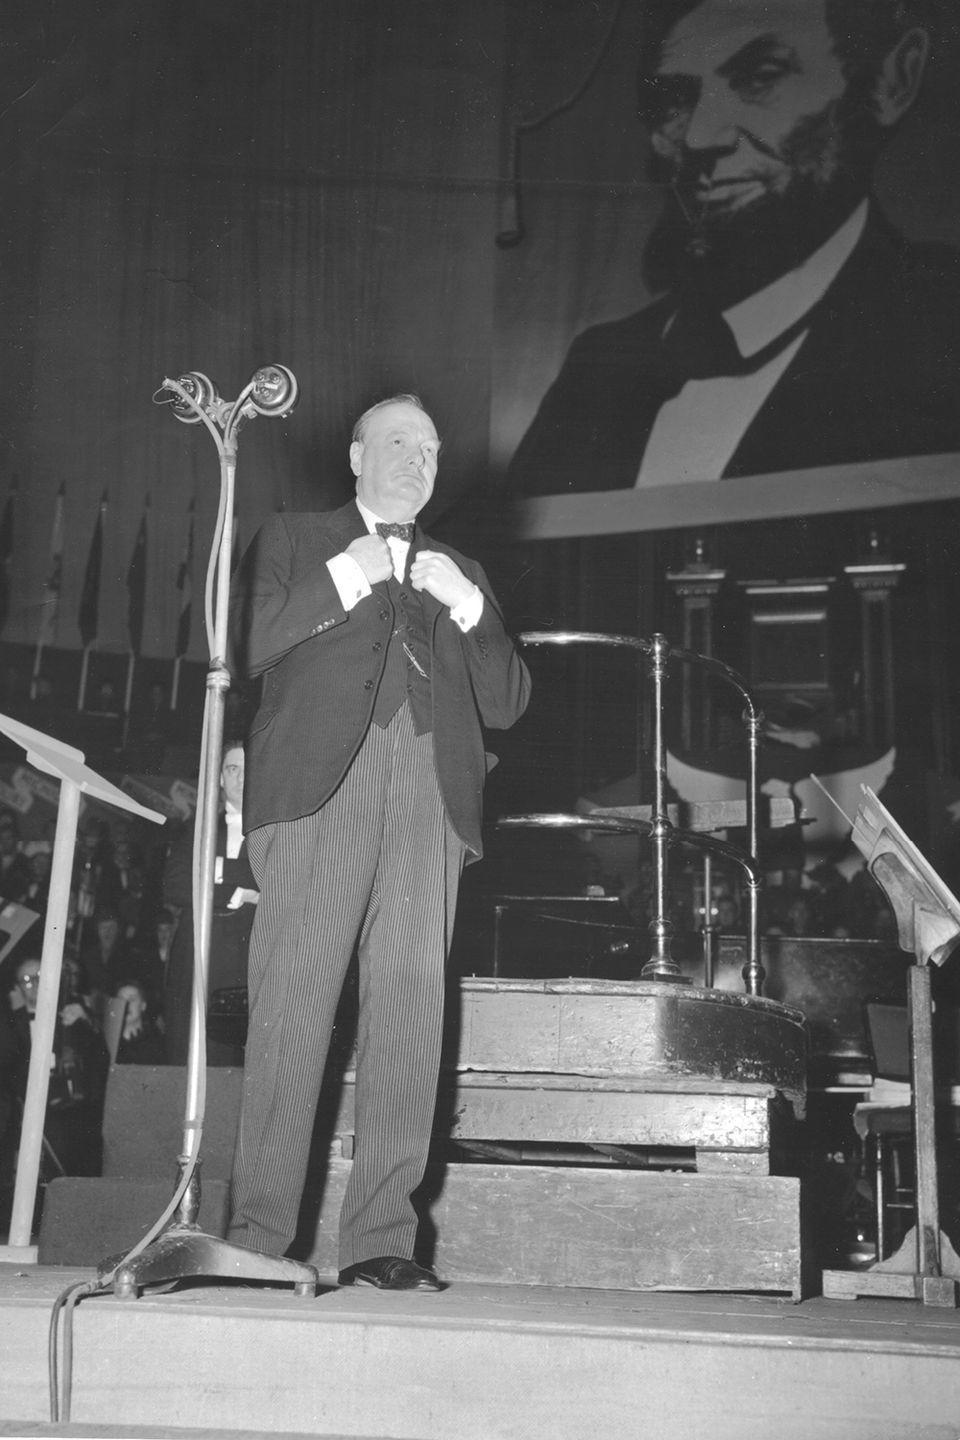 <p>British Prime Minister Winston Churchill addressed an American audience in London in a memorable Thanksgiving tribute to the millions of soldiers and civilians who lost their lives during World War II.</p>